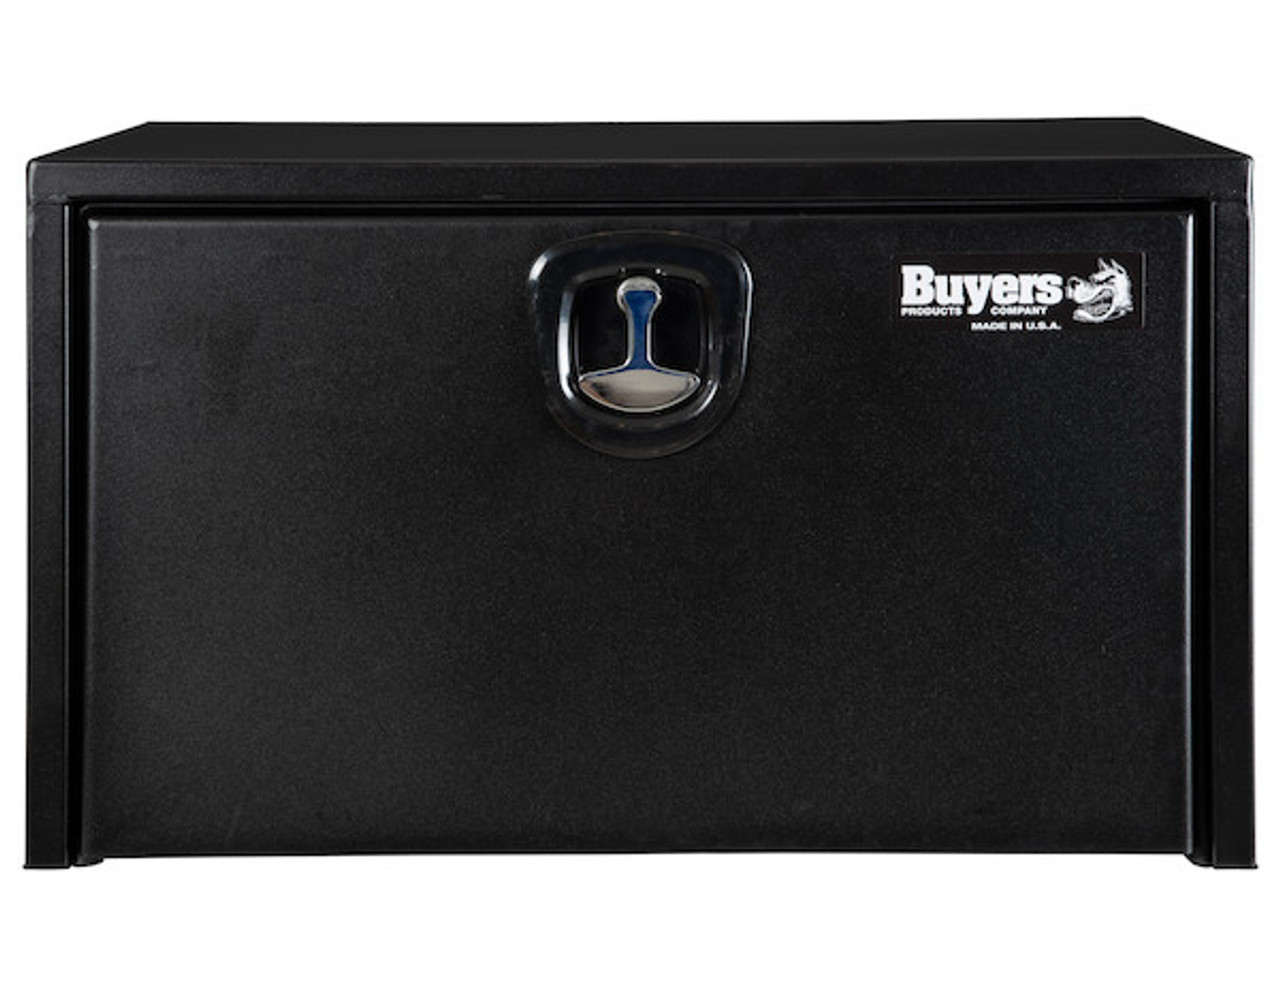 """1732503 BUYERS PRODUCTS TEXTURED MATTE BLACK STEEL UNDERBODY TRUCK TOOLBOX WITH 3-POINT LATCH 18""""Hx18""""Dx30""""W Picture # 3"""